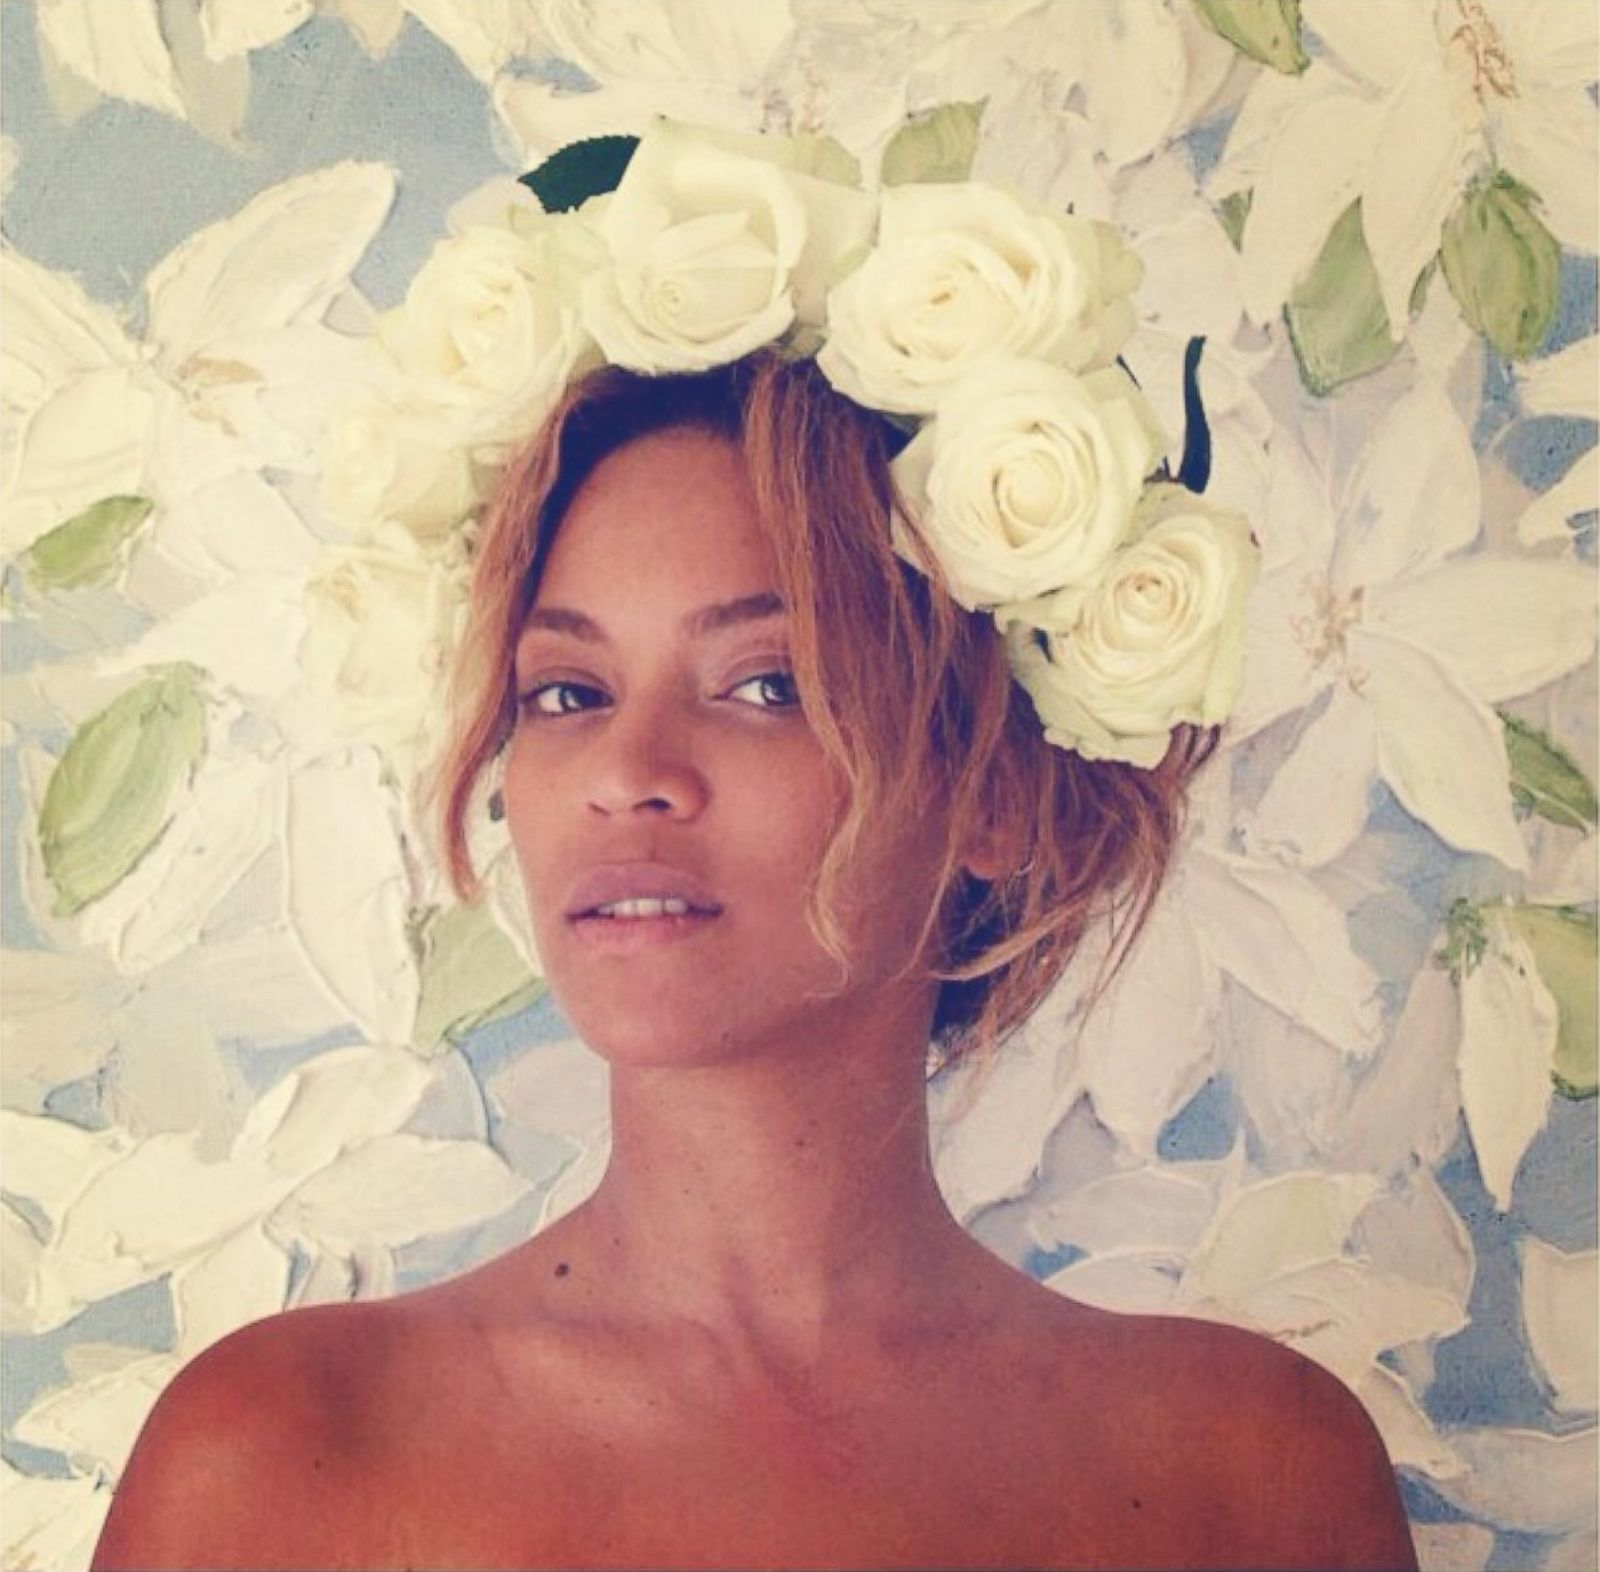 Beyonce Goes Bare With a Crown of Roses Picture | Beyonce ... Beyonce Instagram